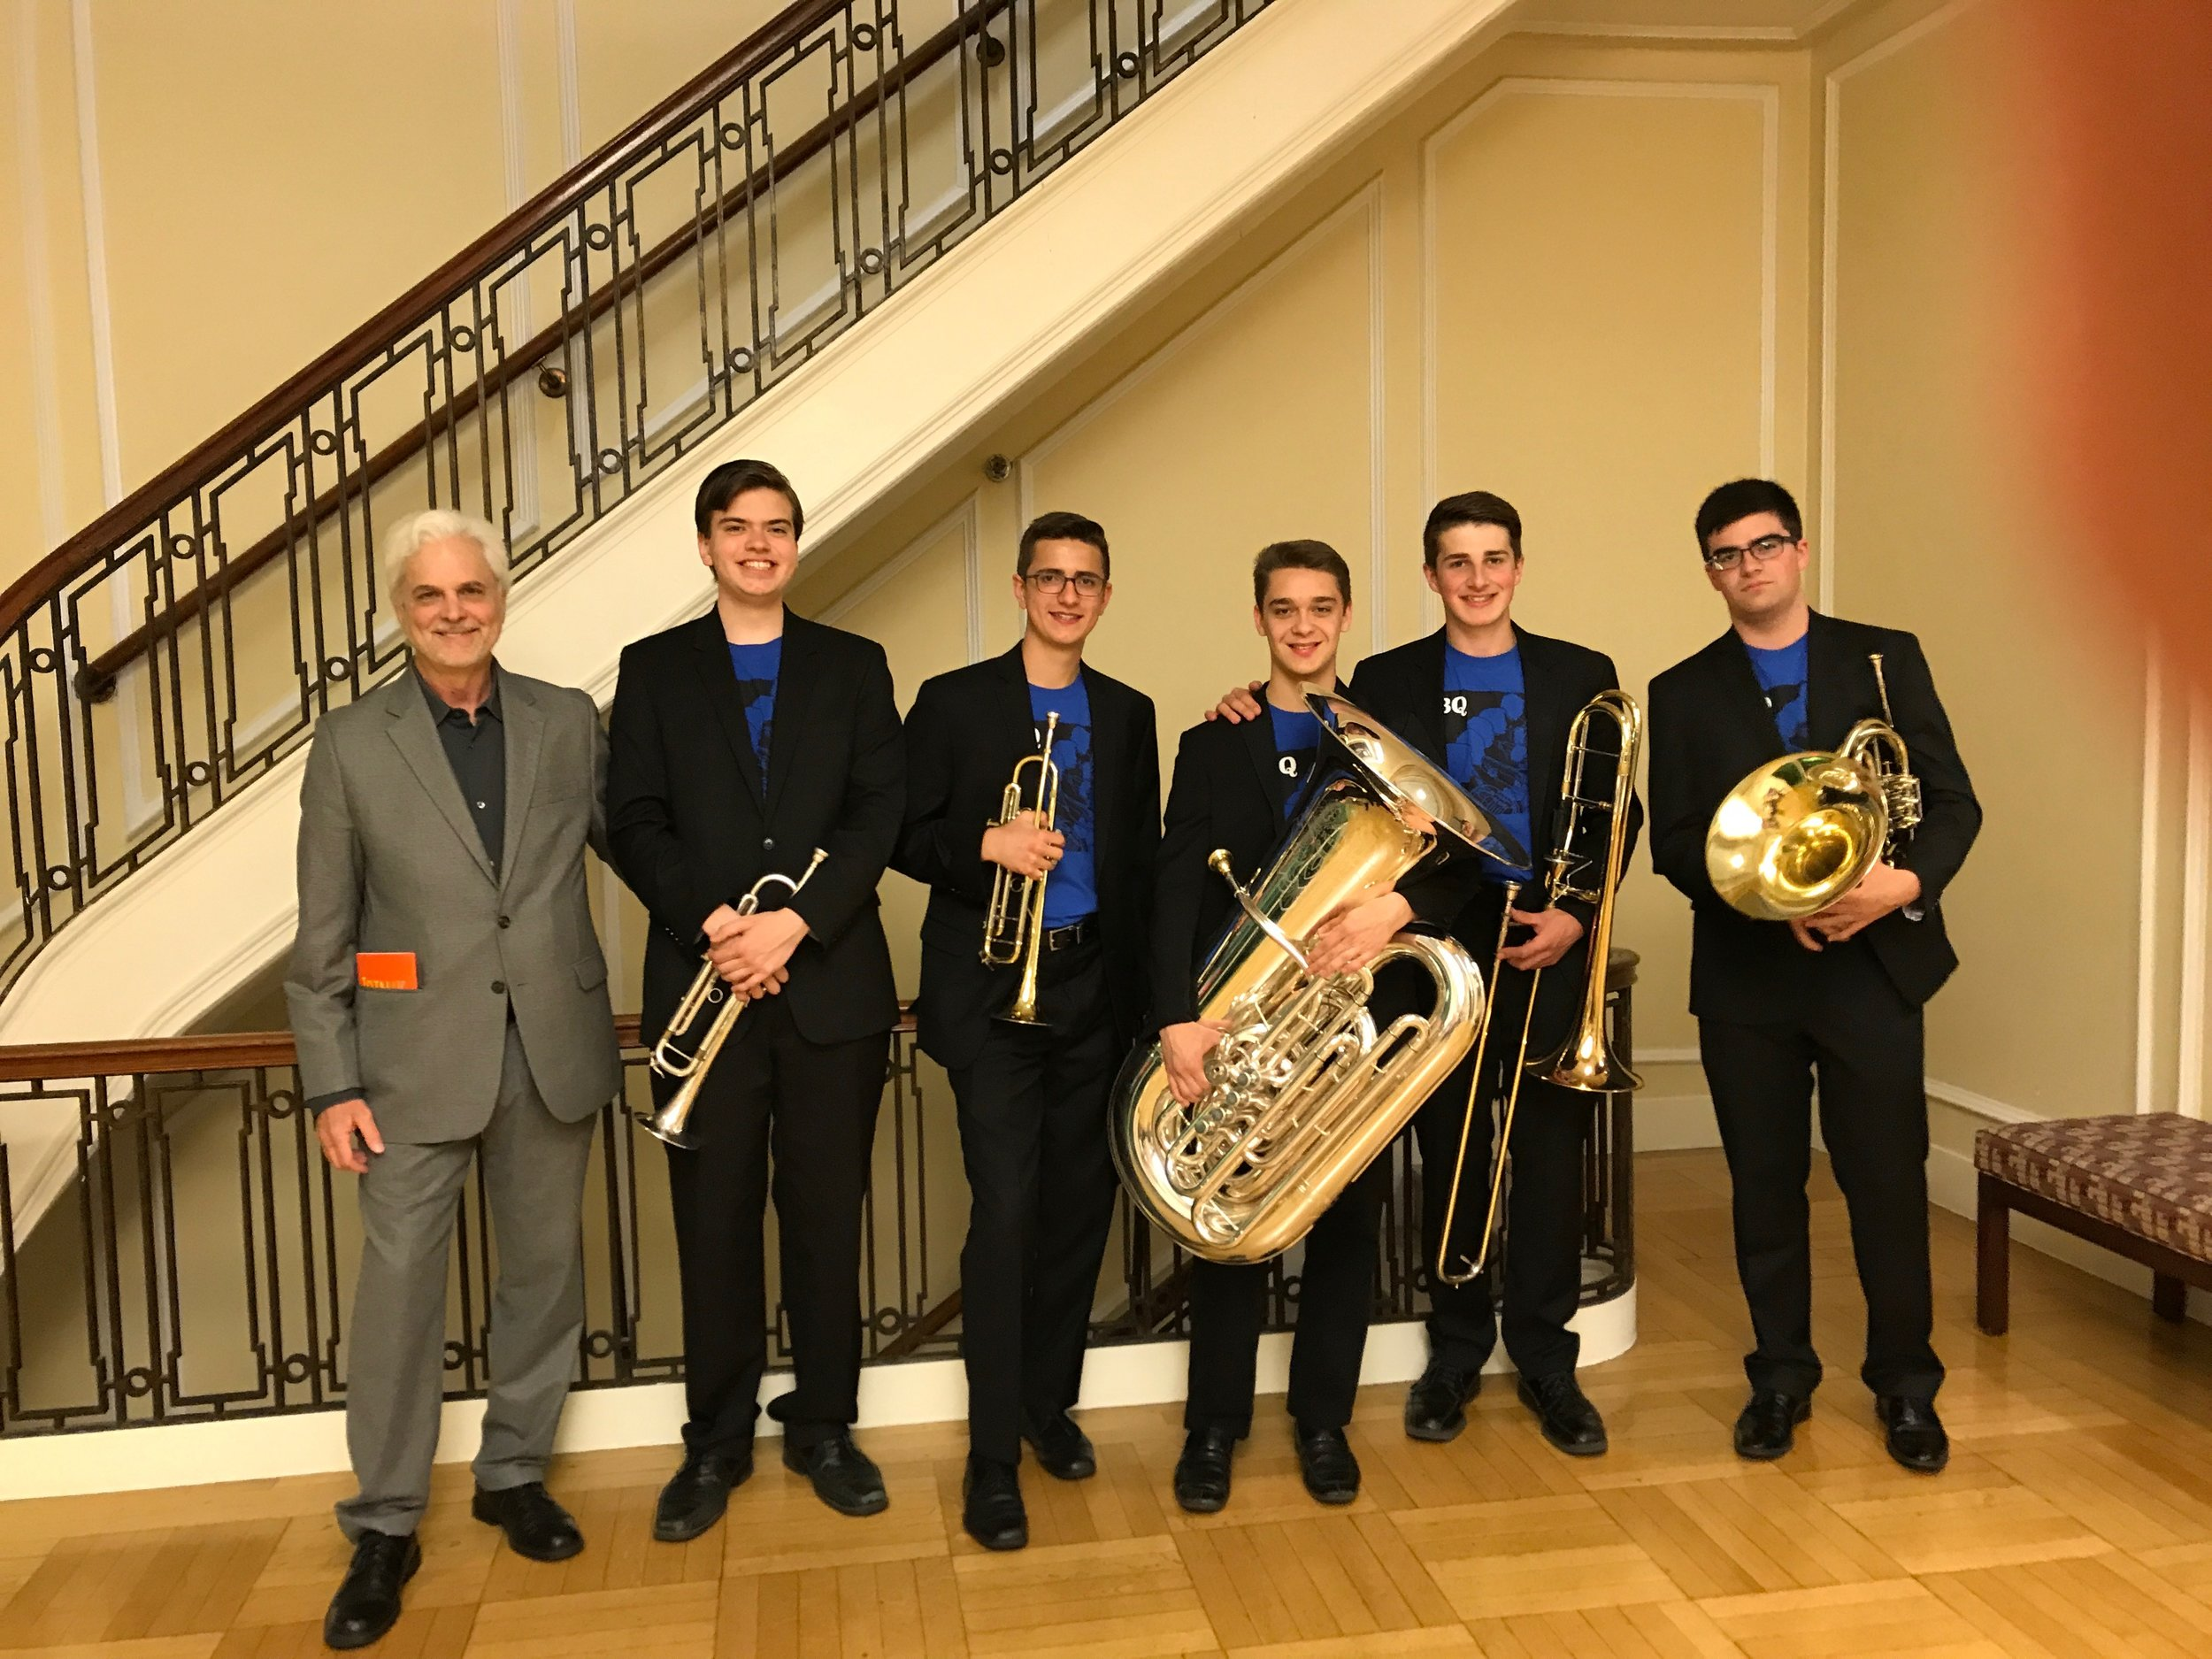 Jim with an ensemble he coaches at The New England Conservatory, The Prep School Honors Brass Quintet